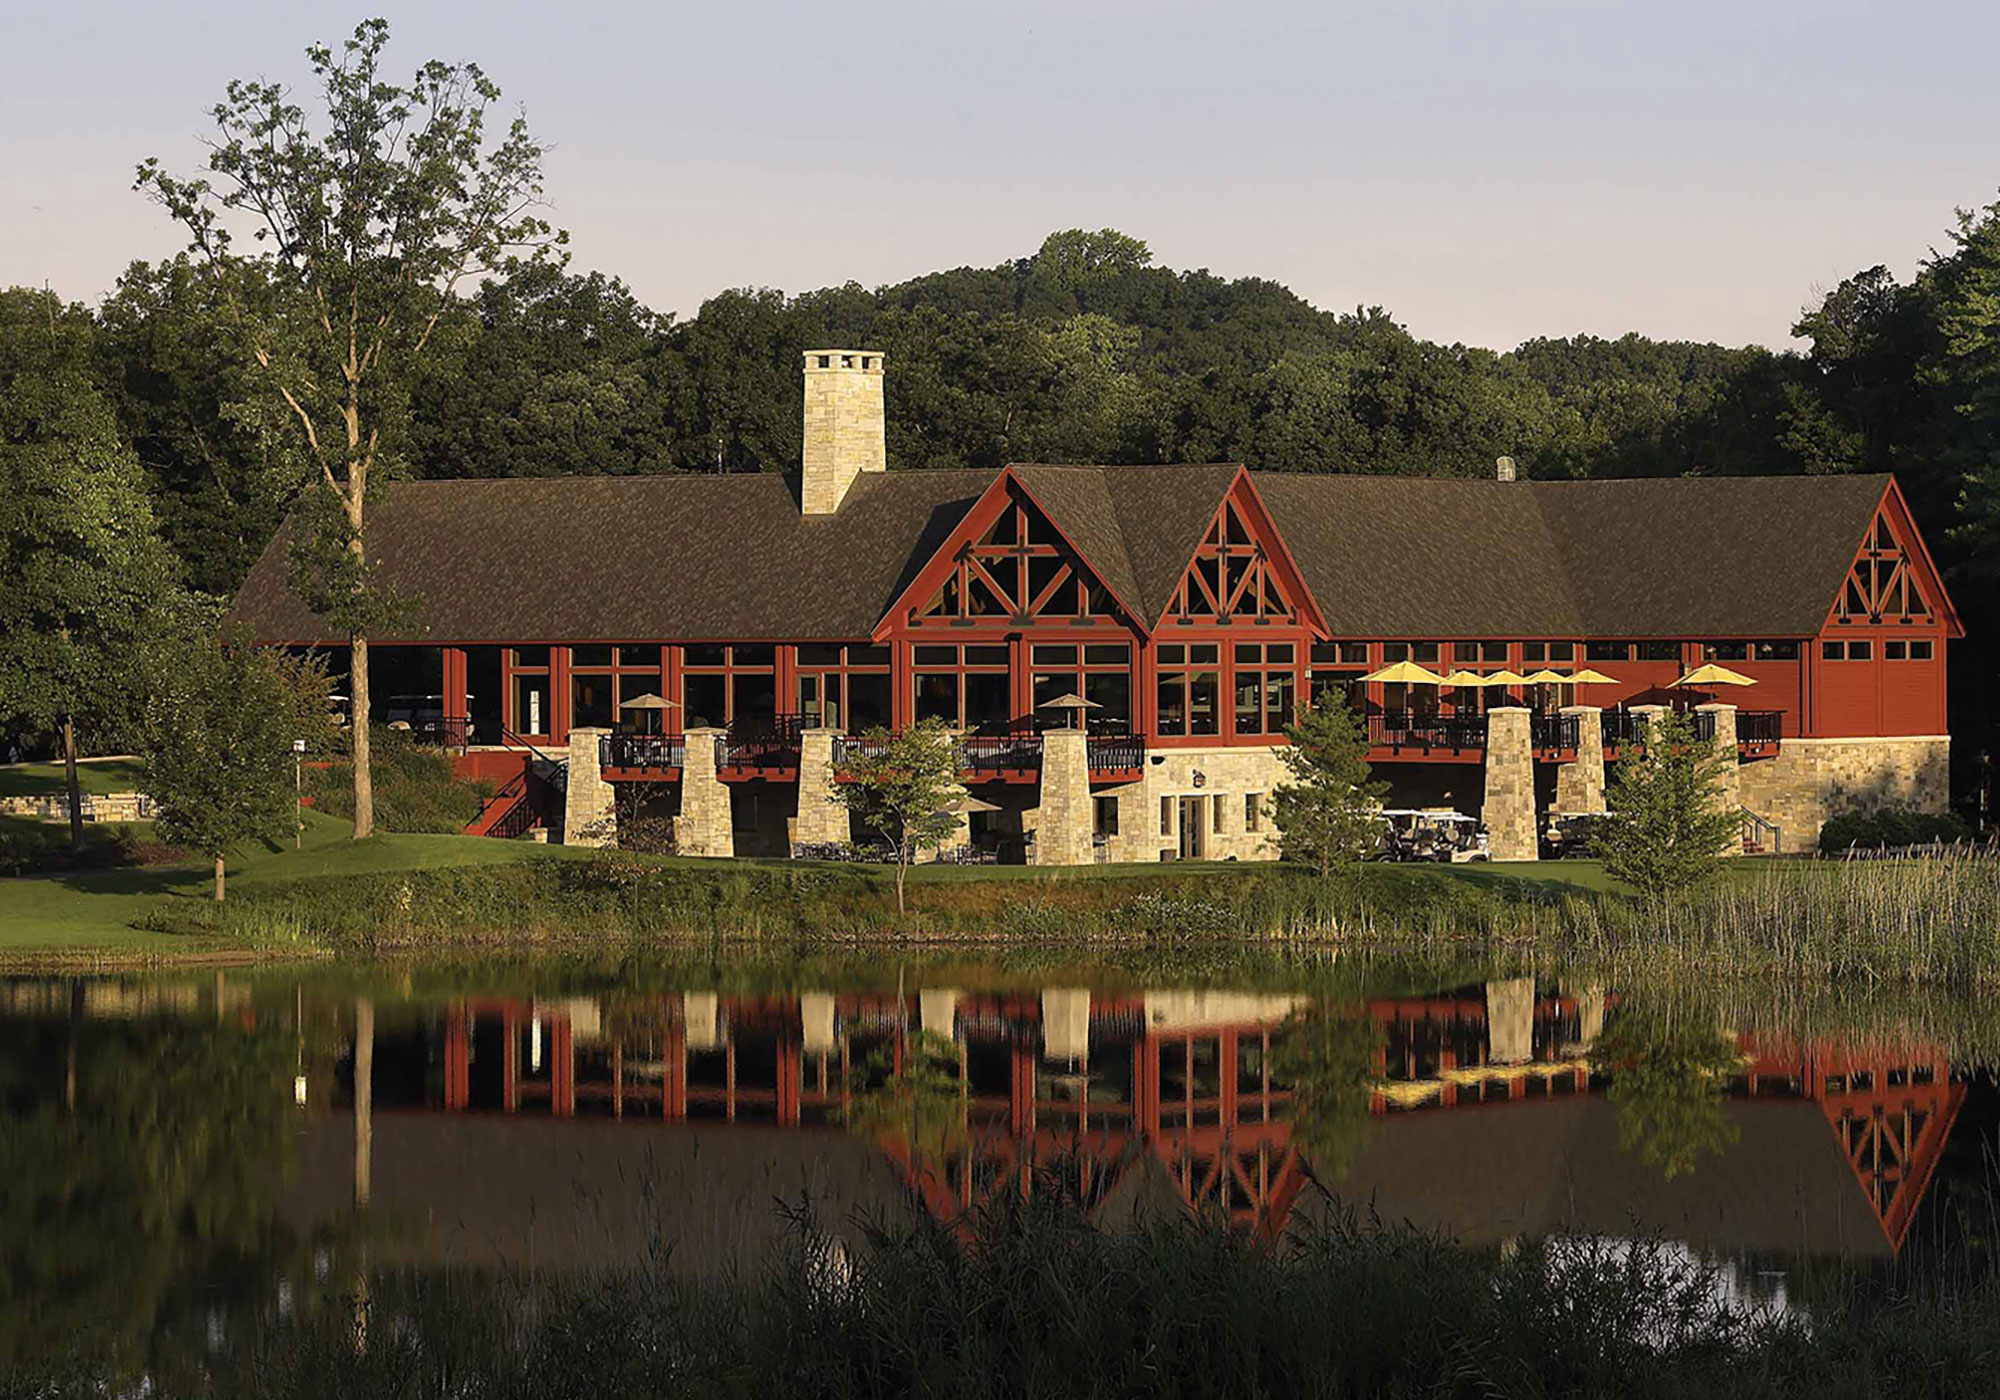 Exterior of the golf club with its reflection in a body of water